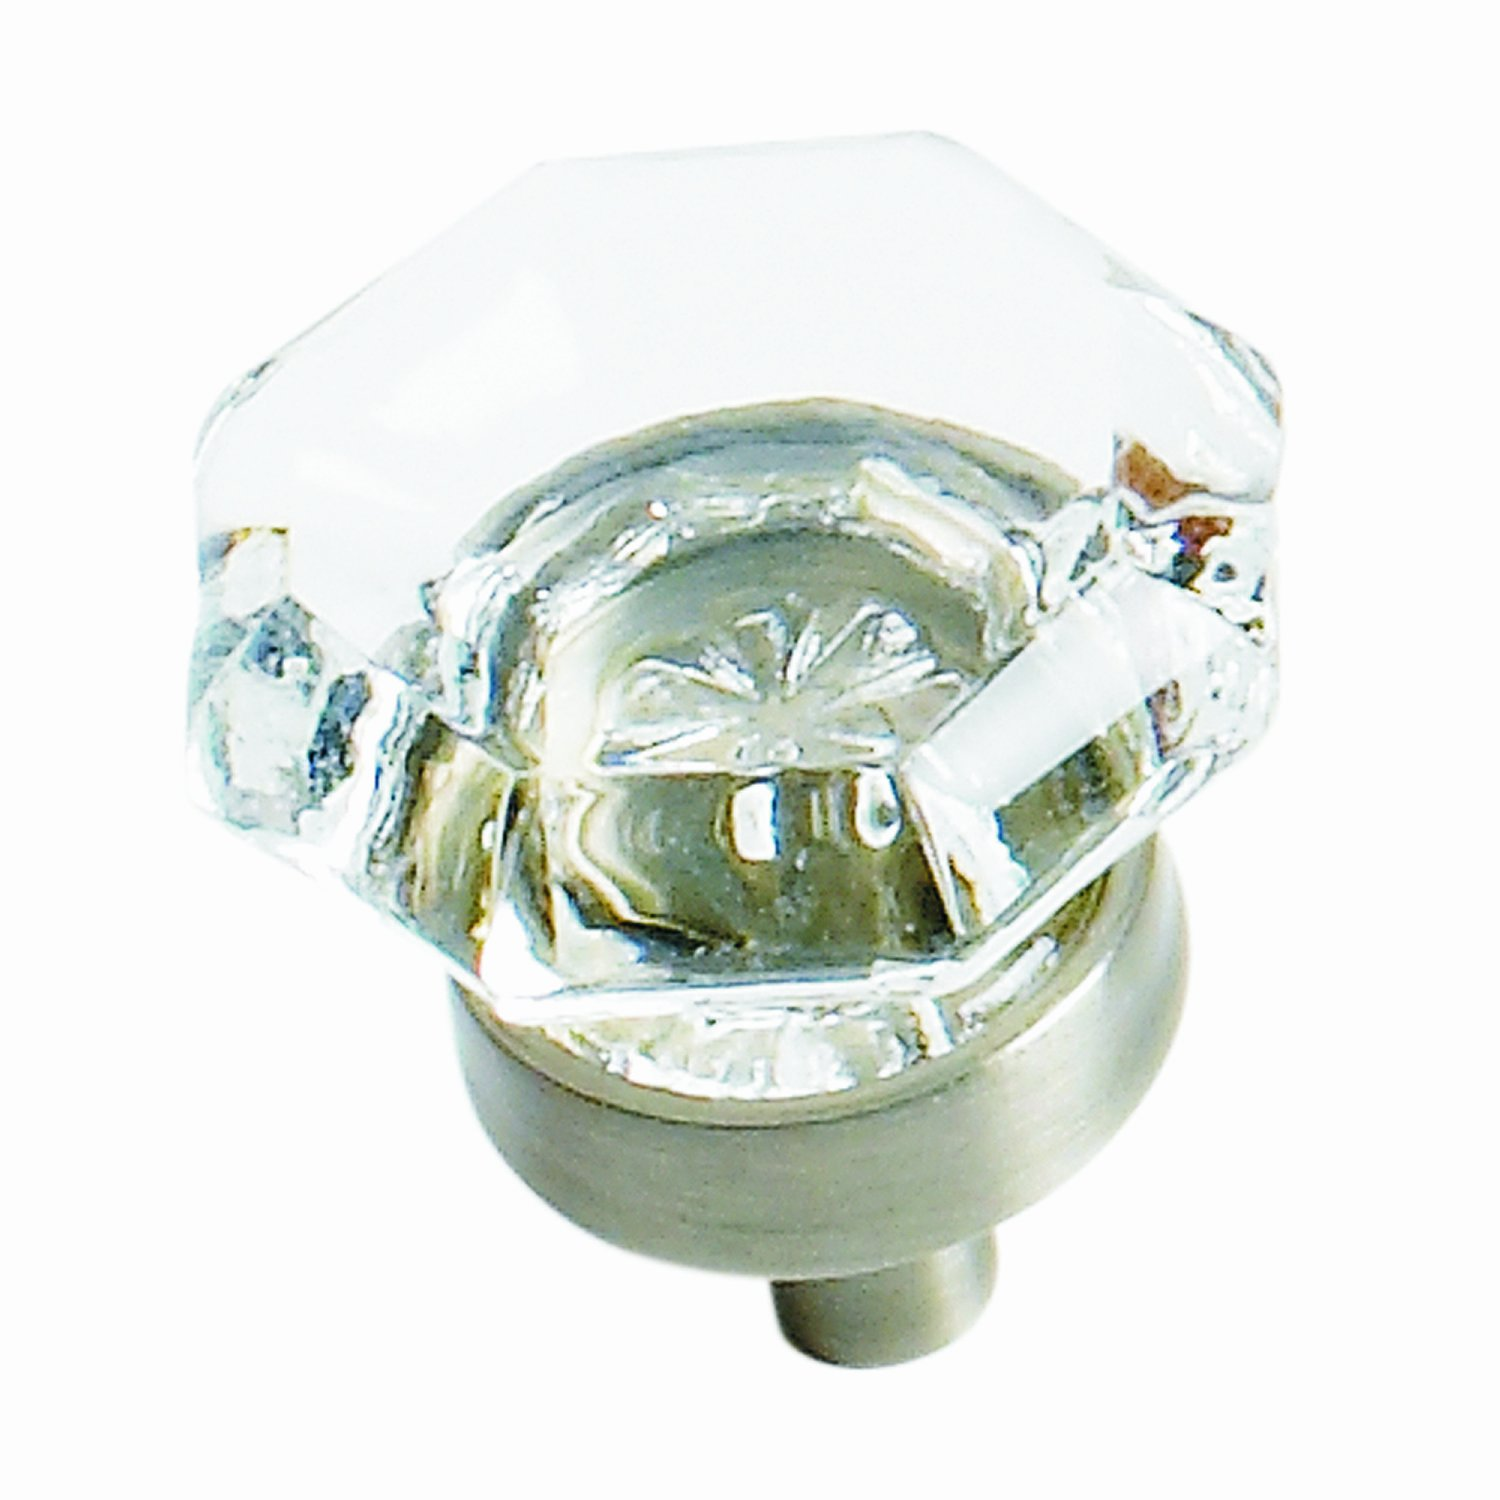 Amerock BP55266CG10 Traditional Classics Clear Glass Knob With Base, Satin  Nickel, 1 Inch   Cabinet And Furniture Knobs   Amazon.com